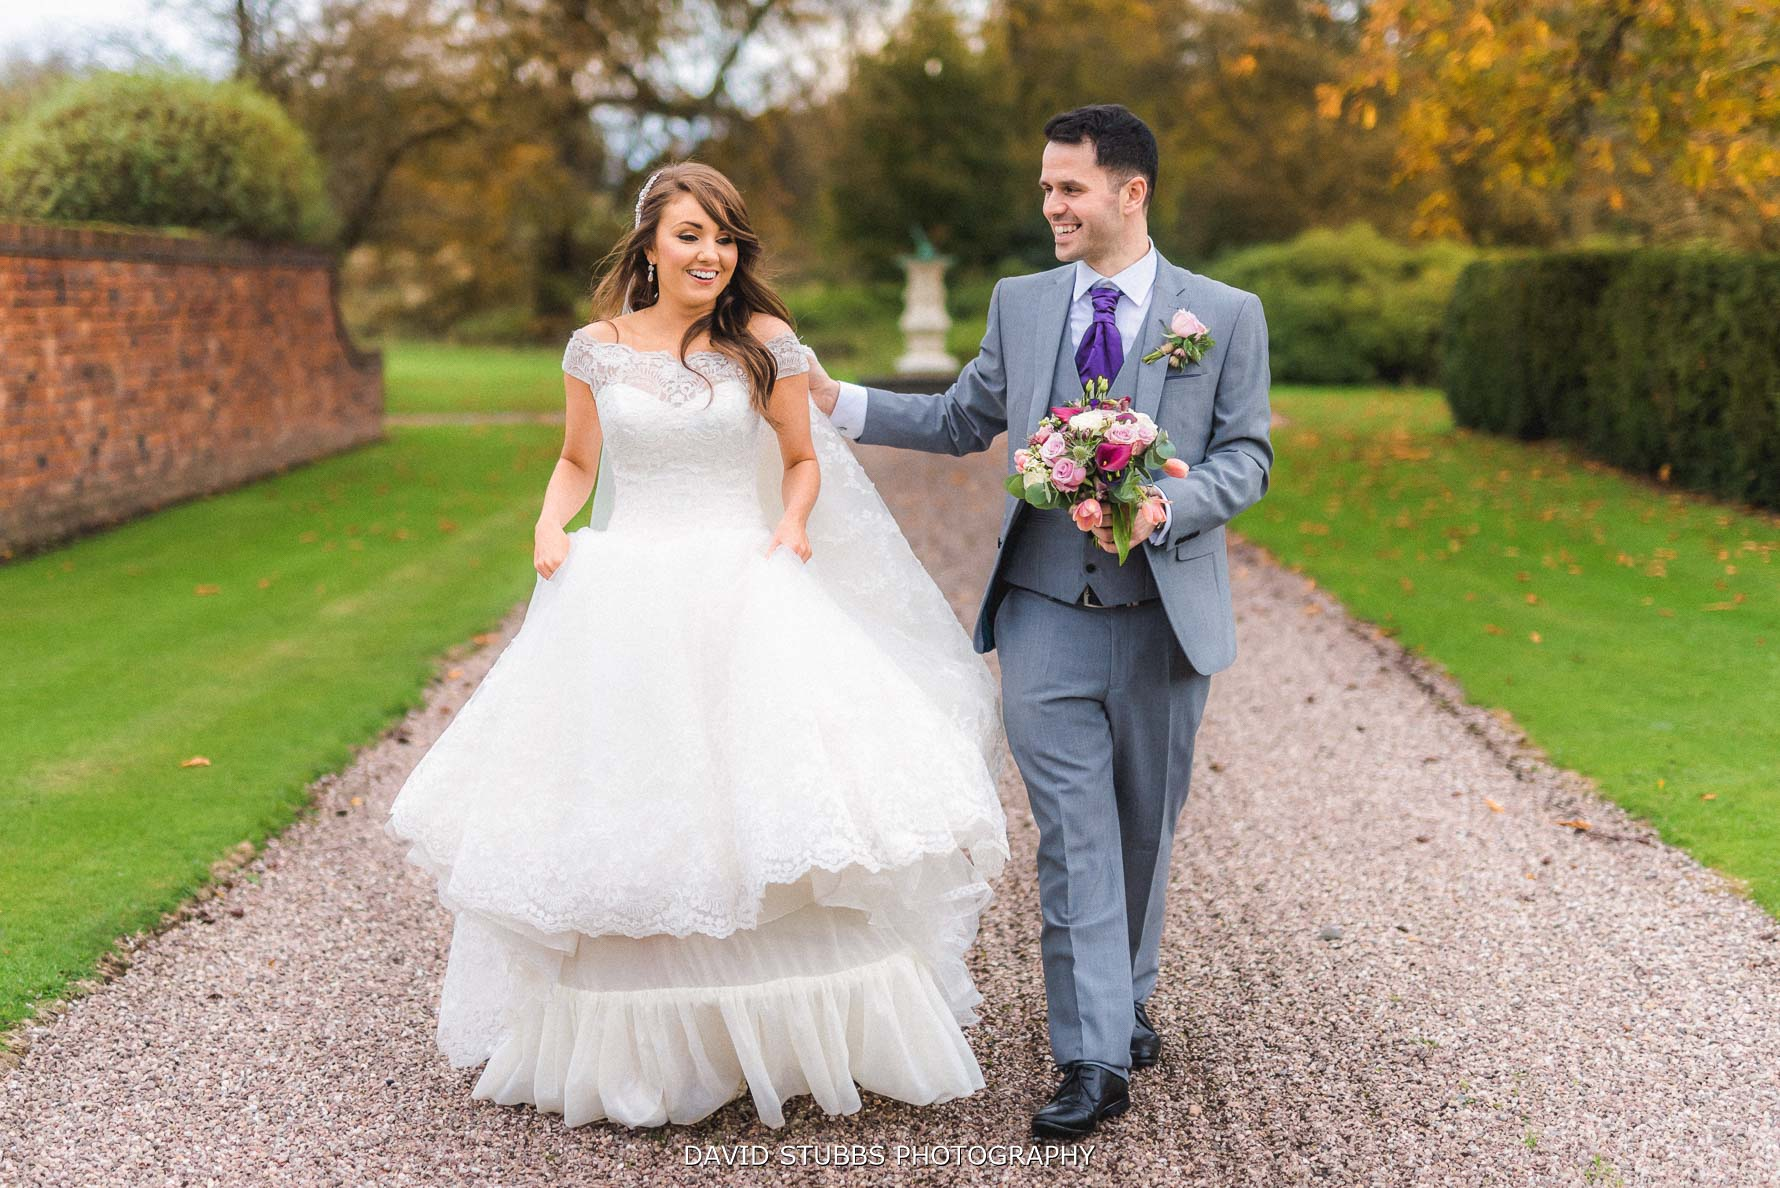 relaxed wedding photo walking along a path